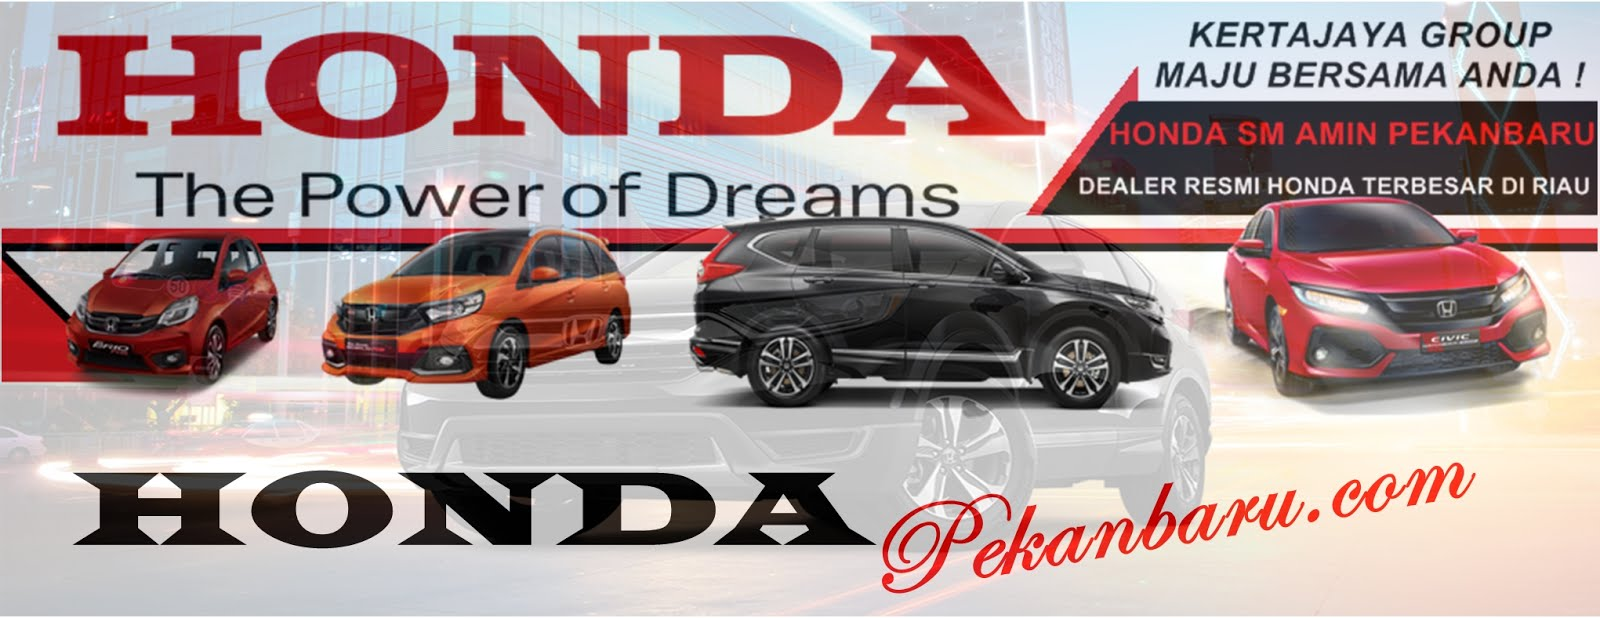 Harga, Kredit, Honda, Brio, Jazz, HRV, City, Civic Turbo, CRV, BRV, Pekanbaru,Riau November 2018